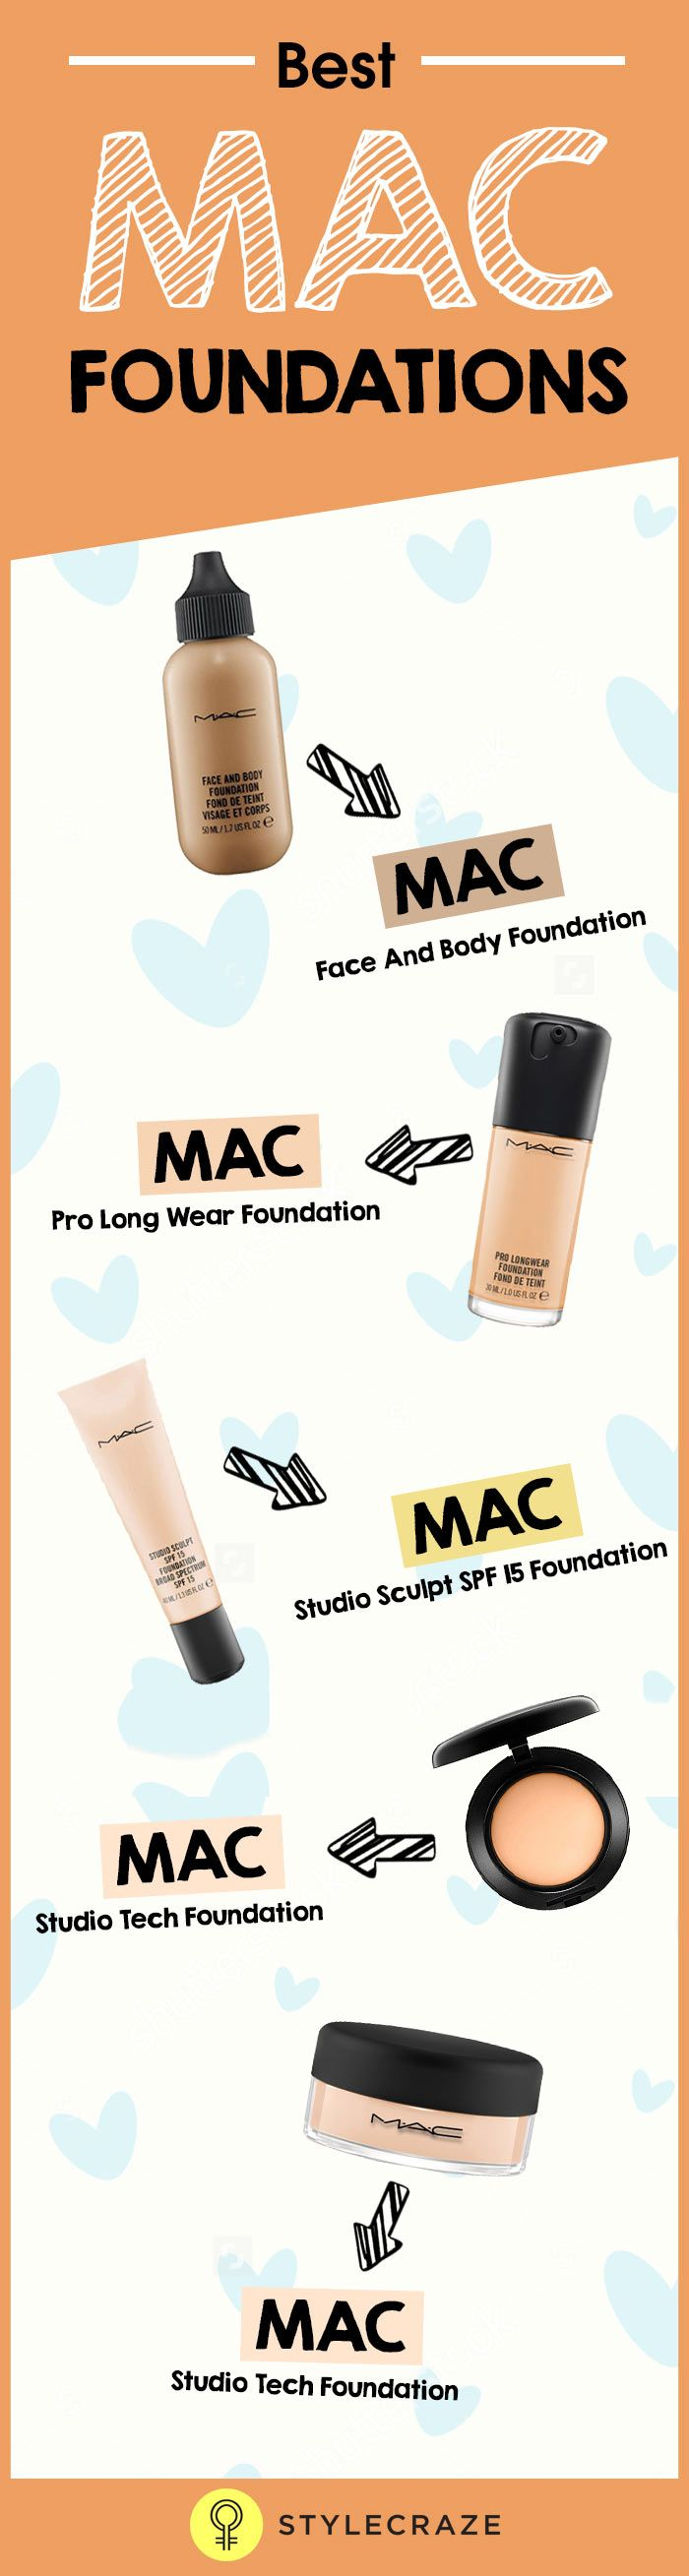 To get the perfect look, you first need a proper base and a foundation. A good foundation will turn your skin into a blank canvas, on which you can create your desired look. And if the foundation comes from the house of MAC, then there is nothing like it! After all, MAC is one of the finest makeup brands that has found a place in the 'must have' lists of all makeup lovers. Let's take a look at the most popular MAC foundations that have taken the fashion world by storm.